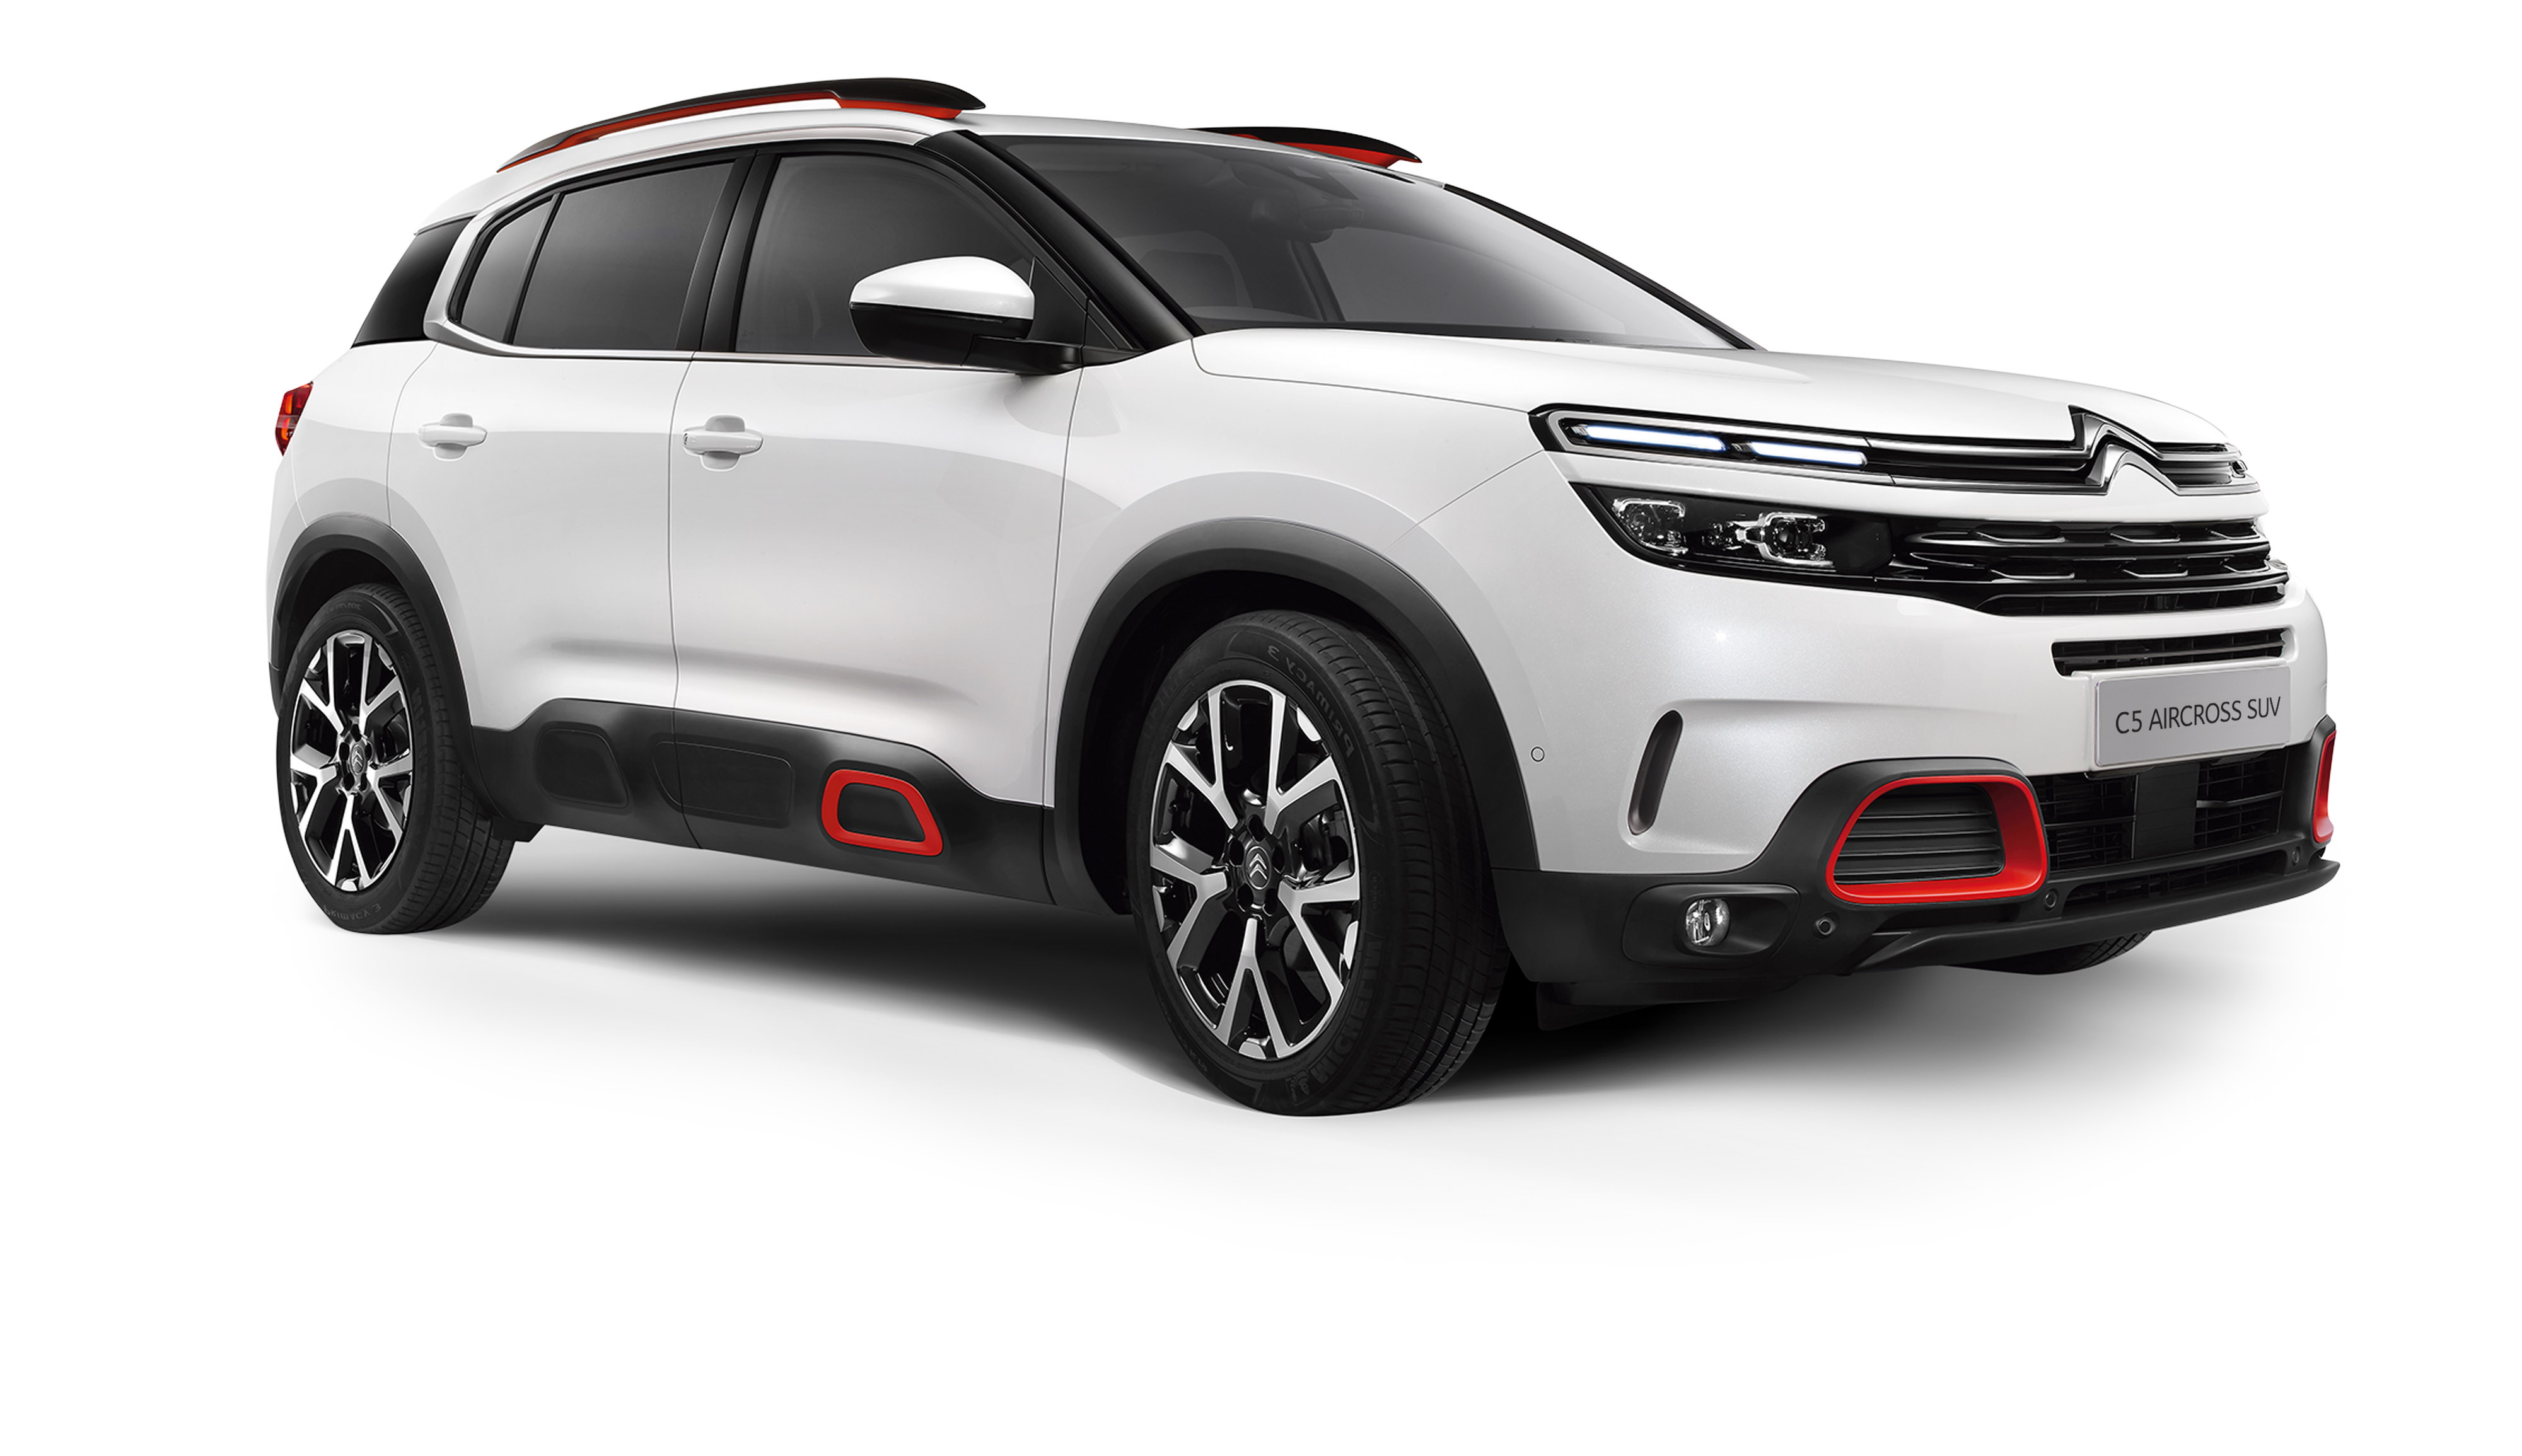 Photo of New C5 Aircross SUV